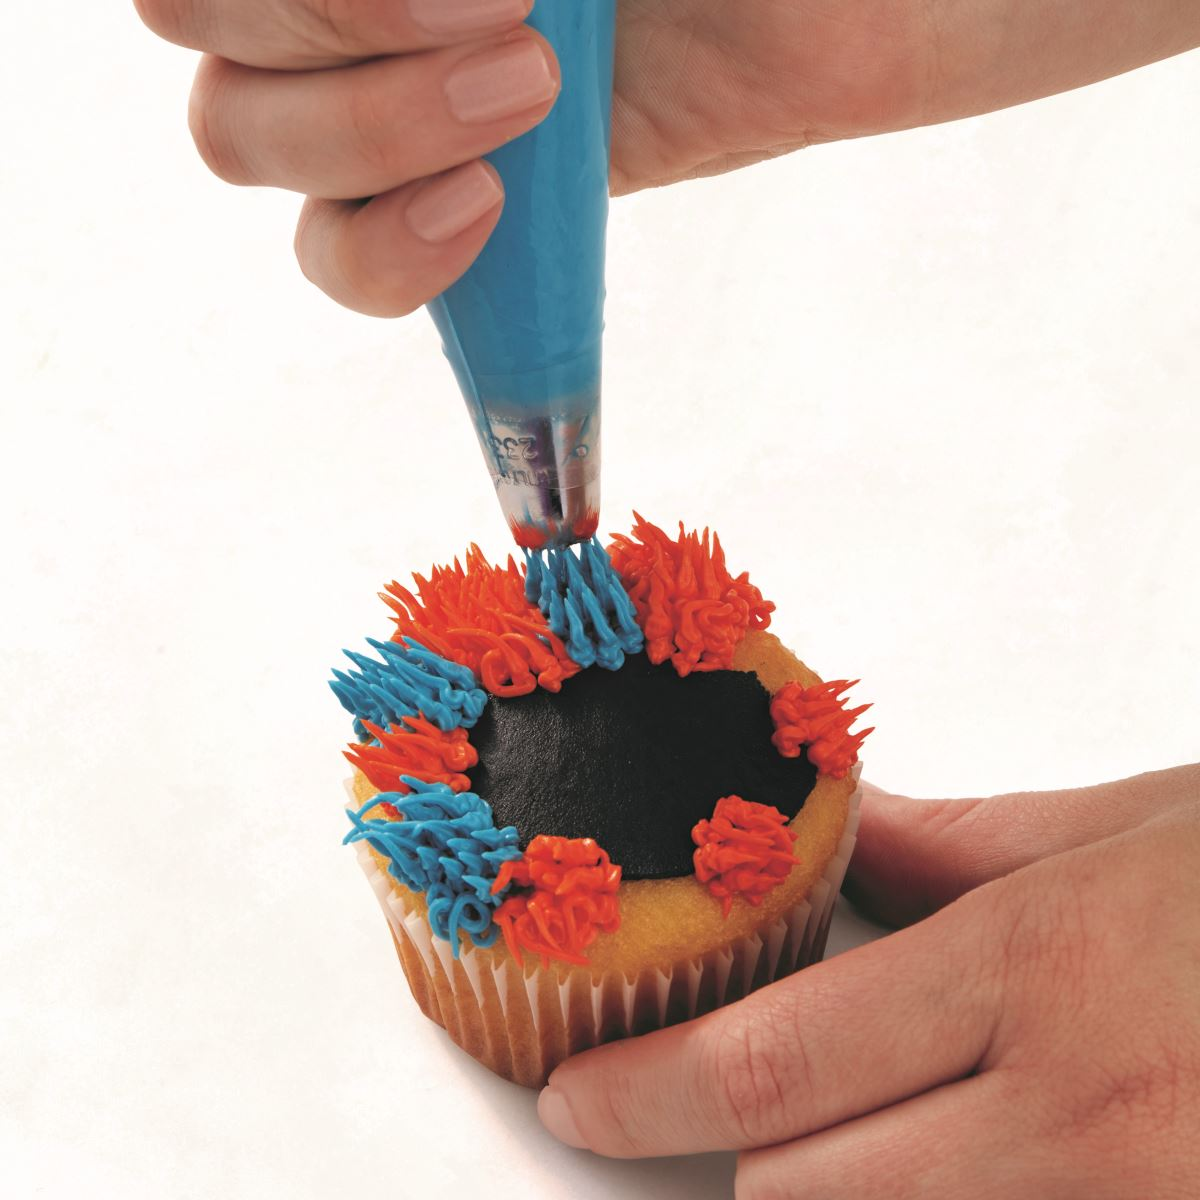 BLUE AND ORANGE MONSTER CUPCAKE step 5